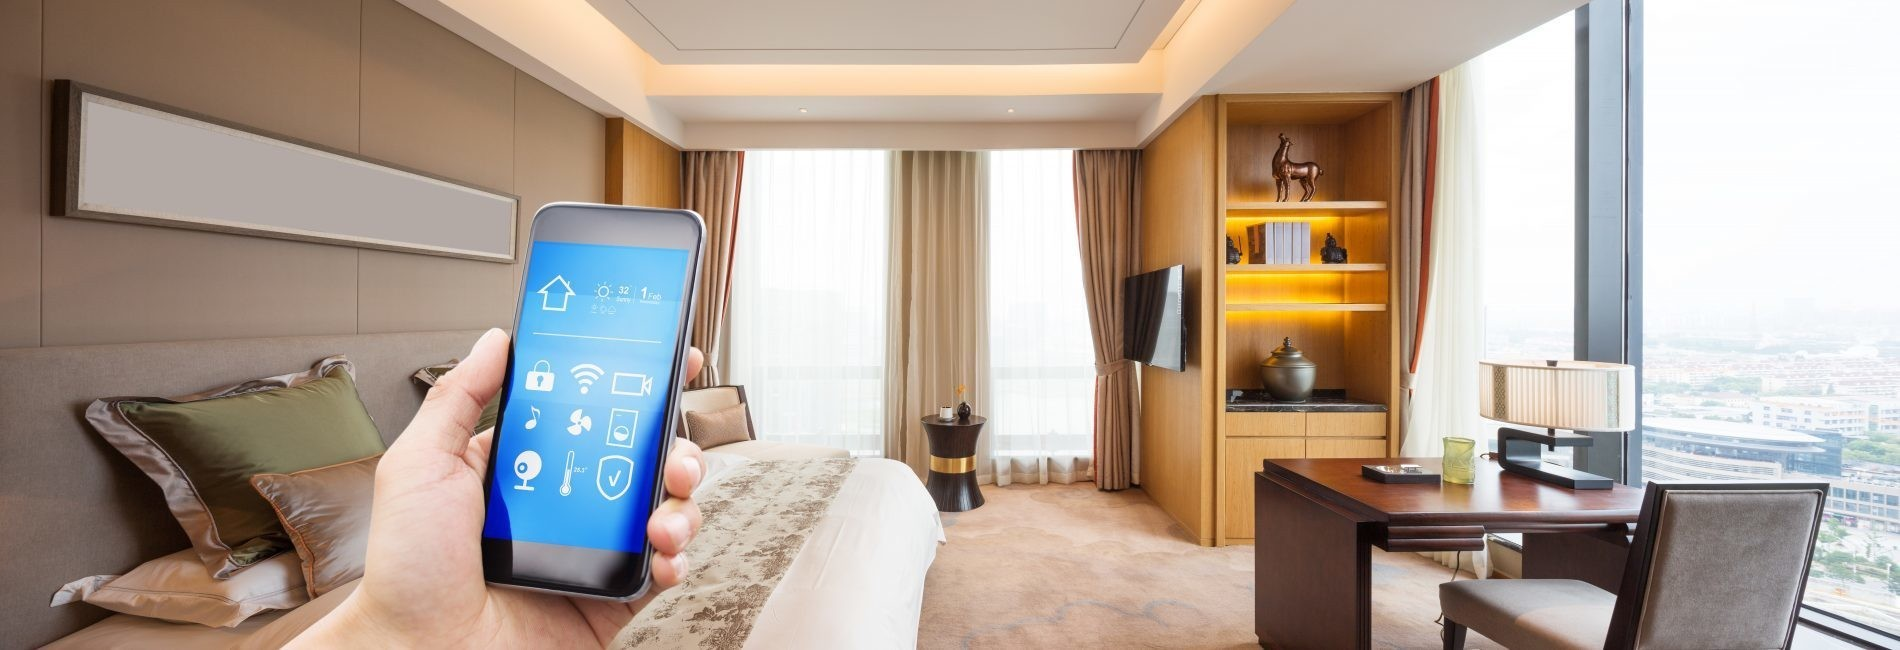 Home Automation Ideas for Your Smart Security System